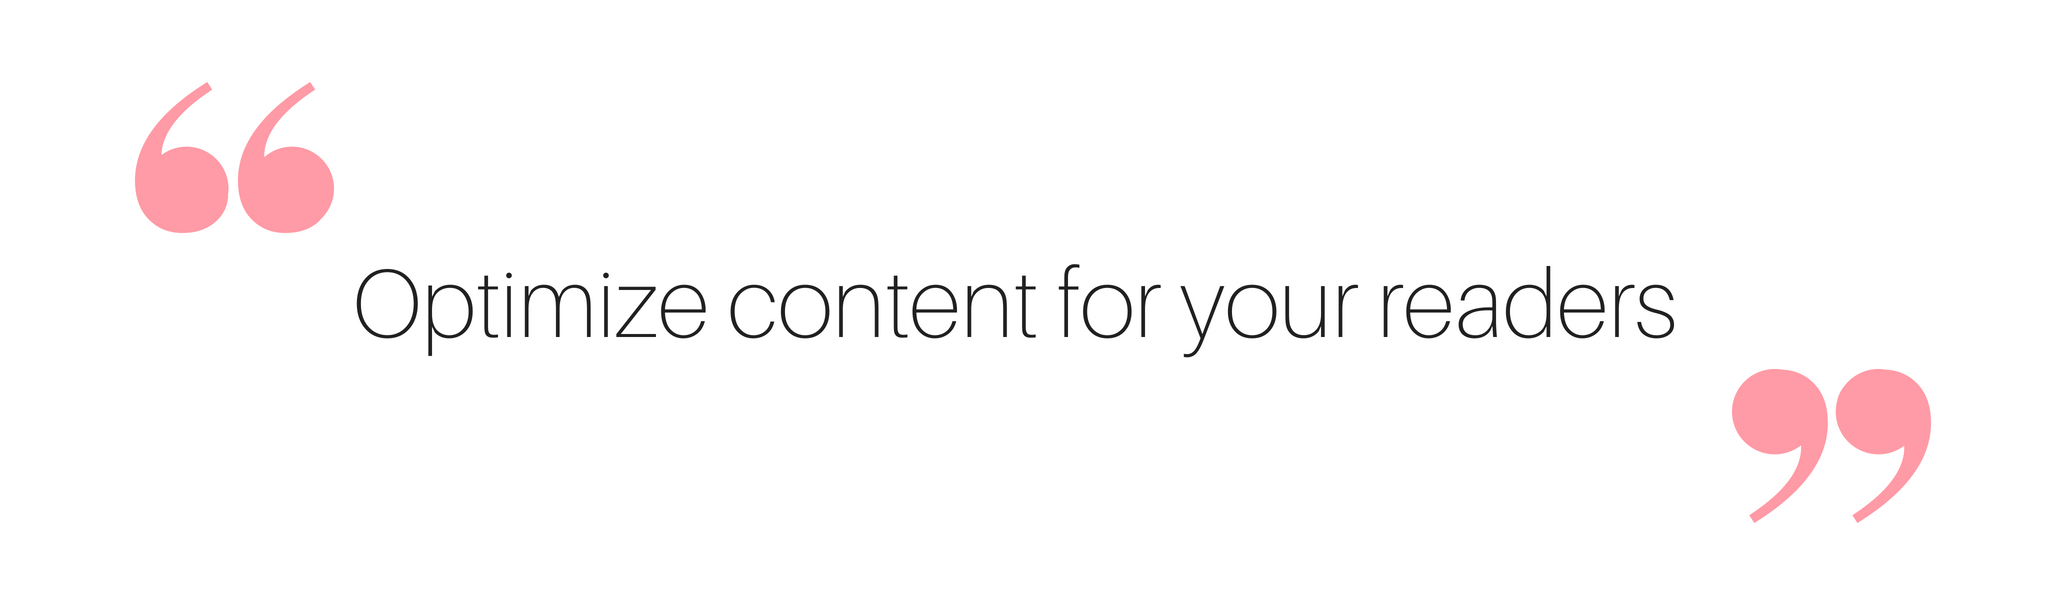 Optimize content for your readers